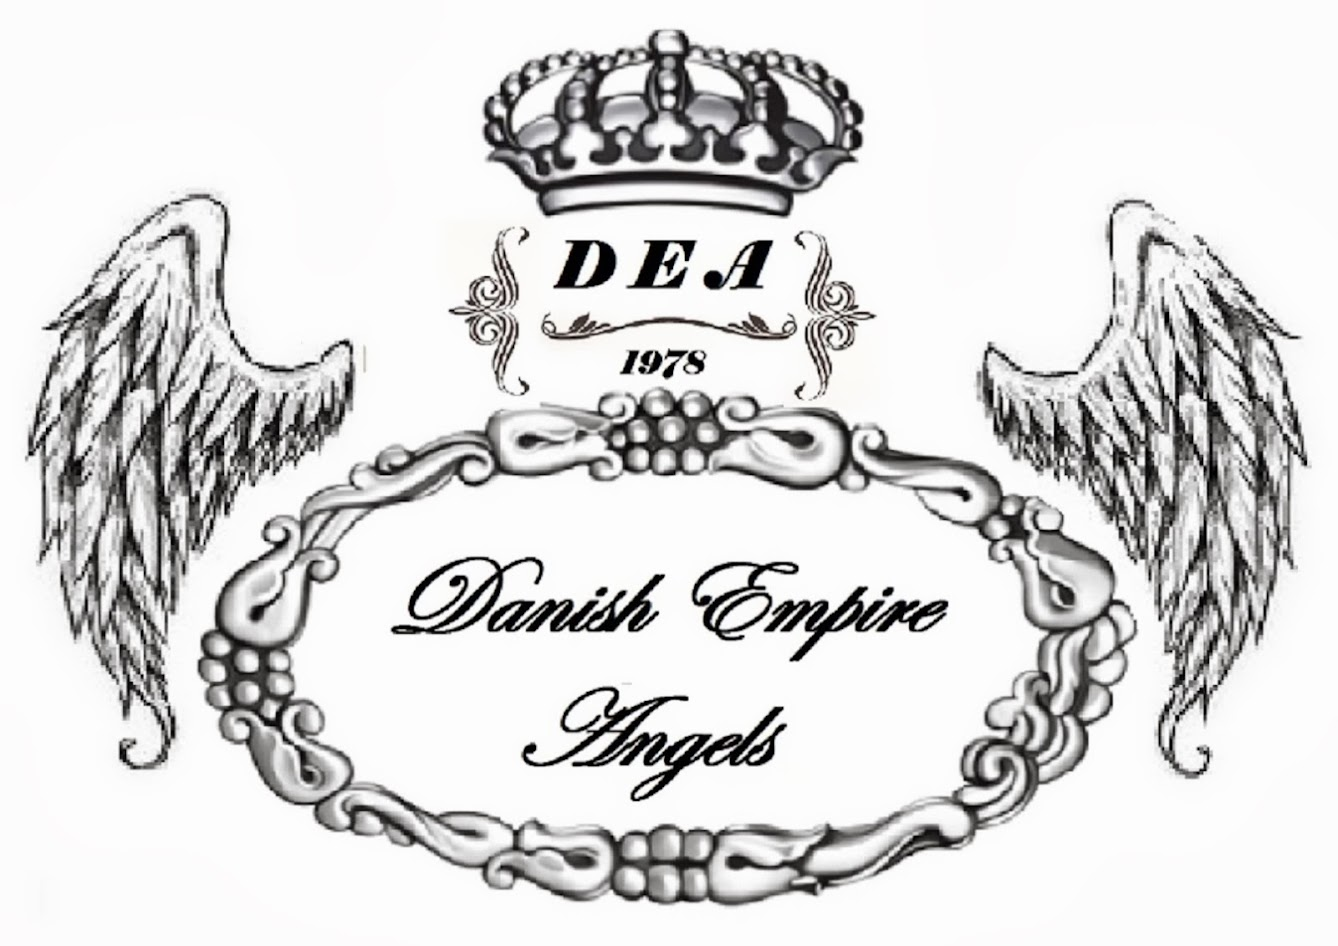 Danish Empire Angels Taté ™ by D E A